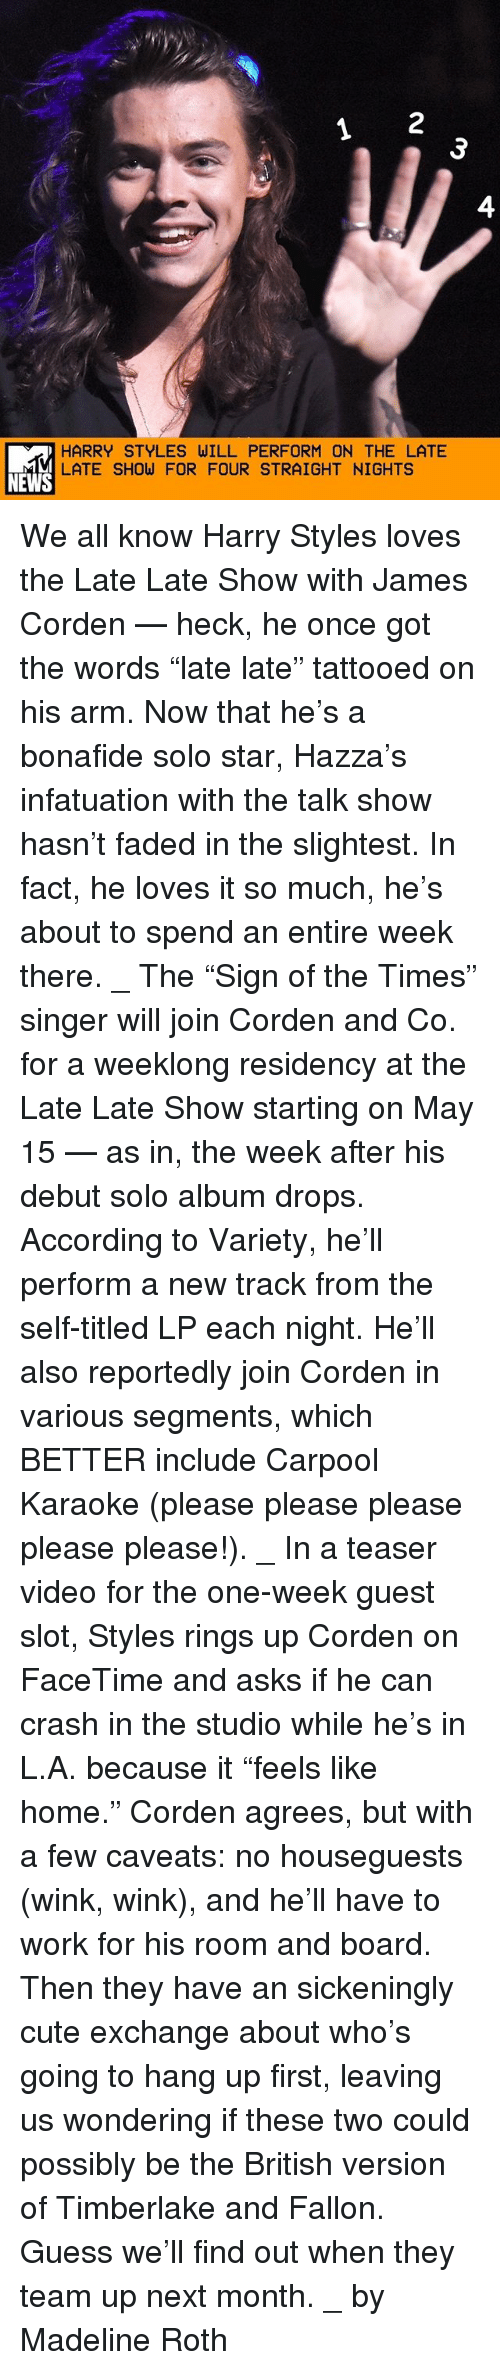 """James Corden: HARRY STYLES WILL PERFORM ON THE LATE  LATE SHOW FOR FOUR STRAIGHT NIGHTS  NEWS We all know Harry Styles loves the Late Late Show with James Corden — heck, he once got the words """"late late"""" tattooed on his arm. Now that he's a bonafide solo star, Hazza's infatuation with the talk show hasn't faded in the slightest. In fact, he loves it so much, he's about to spend an entire week there. _ The """"Sign of the Times"""" singer will join Corden and Co. for a weeklong residency at the Late Late Show starting on May 15 — as in, the week after his debut solo album drops. According to Variety, he'll perform a new track from the self-titled LP each night. He'll also reportedly join Corden in various segments, which BETTER include Carpool Karaoke (please please please please please!). _ In a teaser video for the one-week guest slot, Styles rings up Corden on FaceTime and asks if he can crash in the studio while he's in L.A. because it """"feels like home."""" Corden agrees, but with a few caveats: no houseguests (wink, wink), and he'll have to work for his room and board. Then they have an sickeningly cute exchange about who's going to hang up first, leaving us wondering if these two could possibly be the British version of Timberlake and Fallon. Guess we'll find out when they team up next month. _ by Madeline Roth"""